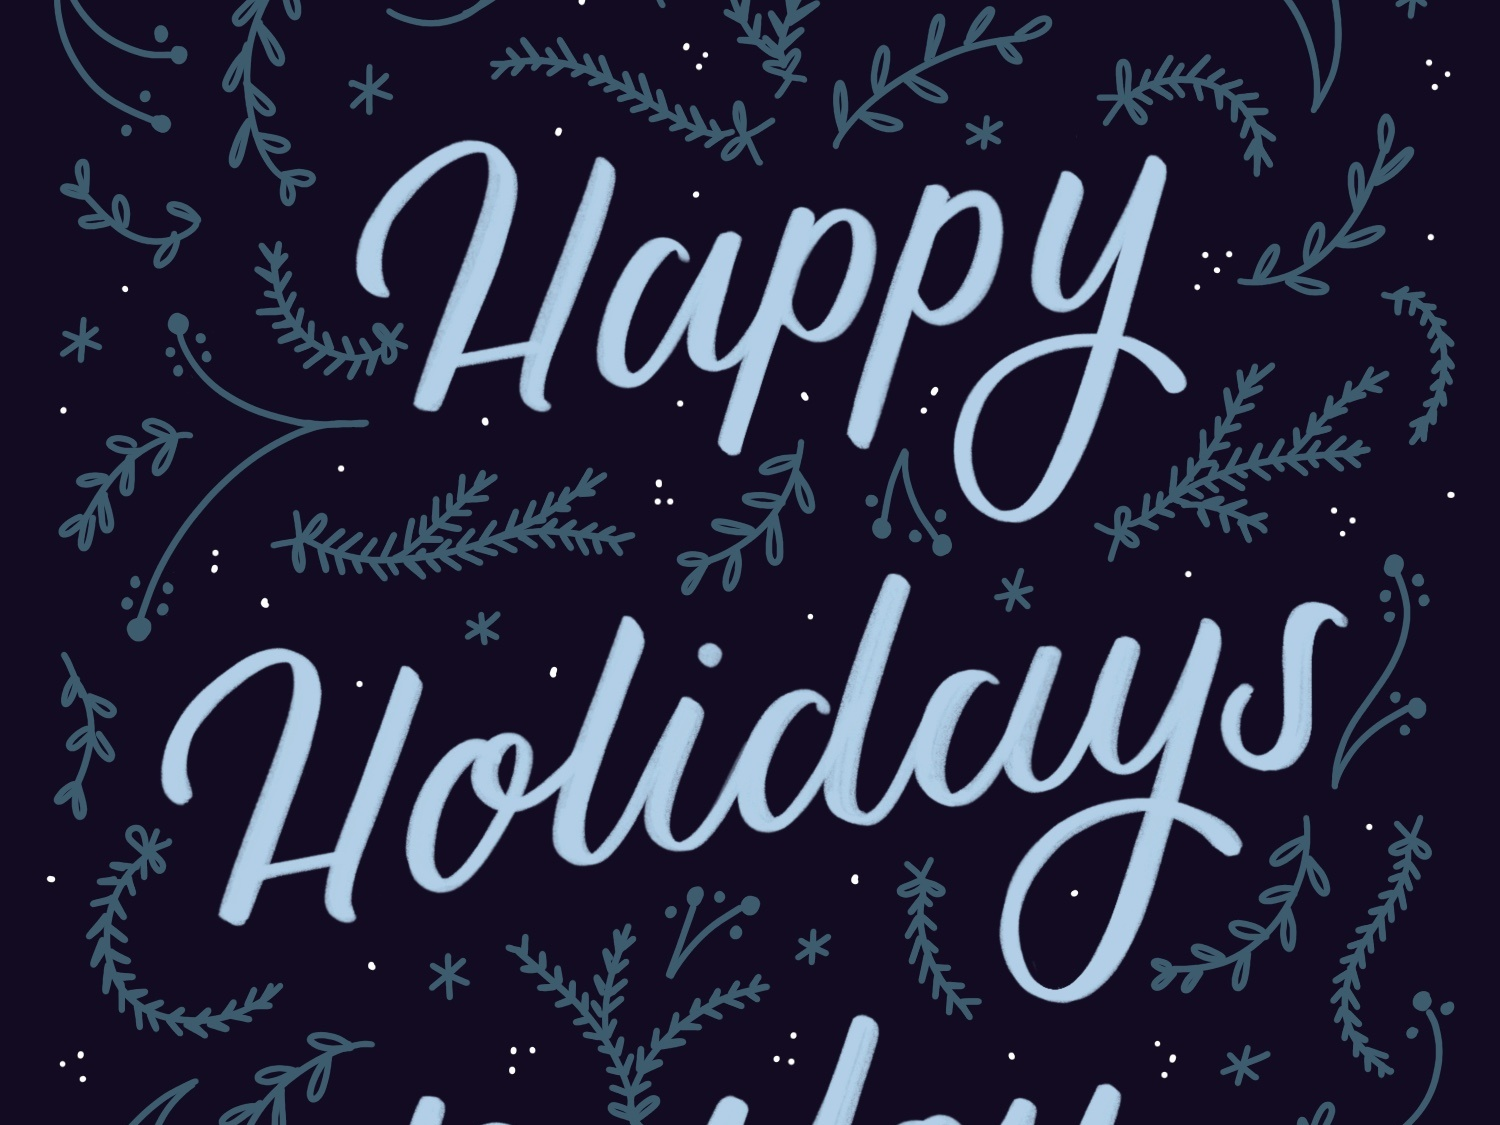 Happy Holidays christmas cards happy holidays design lettering